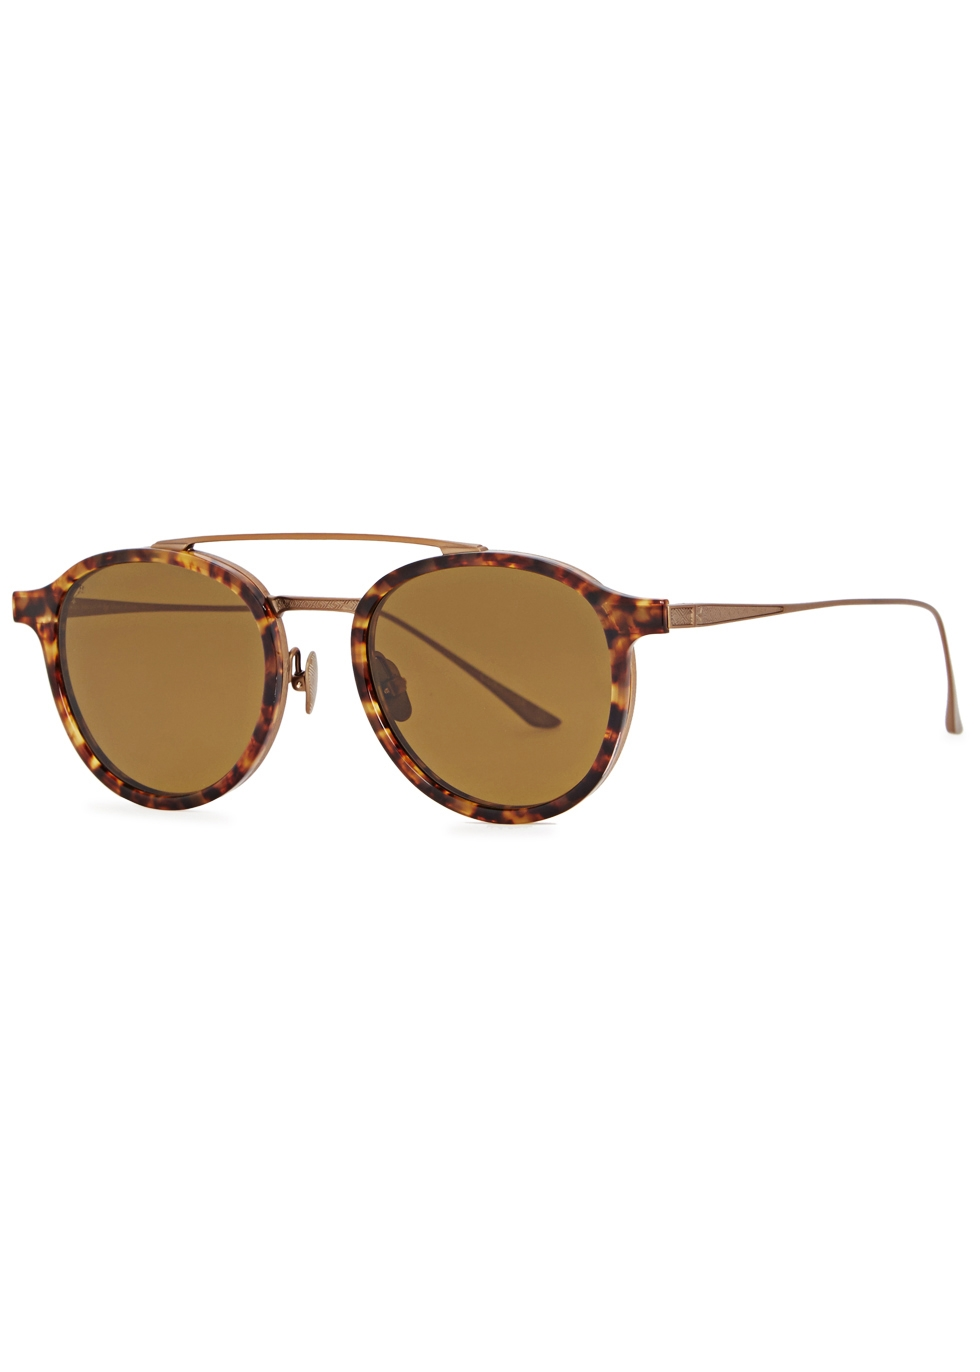 LEISURE SOCIETY CORBUSIER 18CT ANTIQUE GOLD-PLATED SUNGLASSES